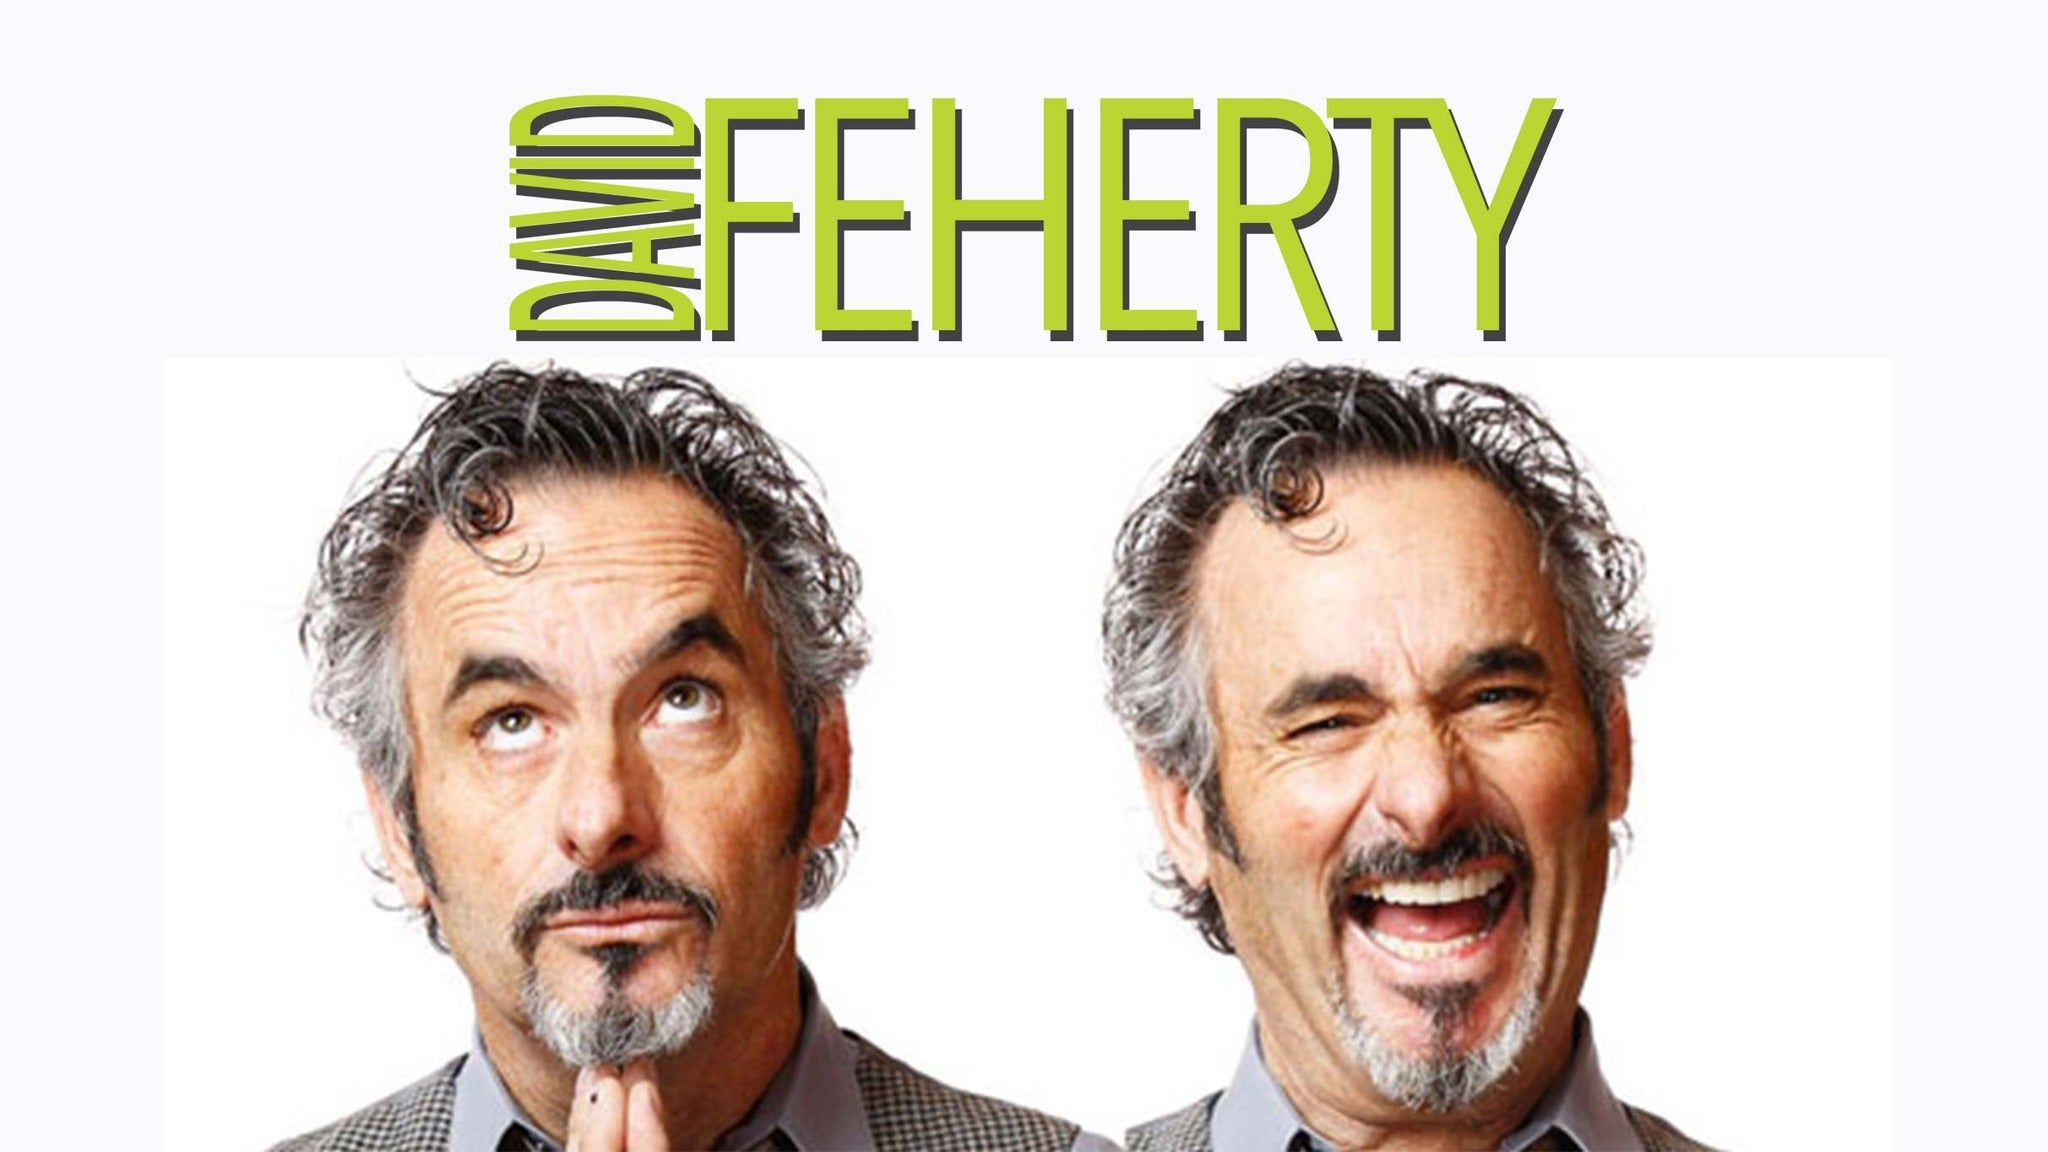 David Feherty at McCallum Theatre